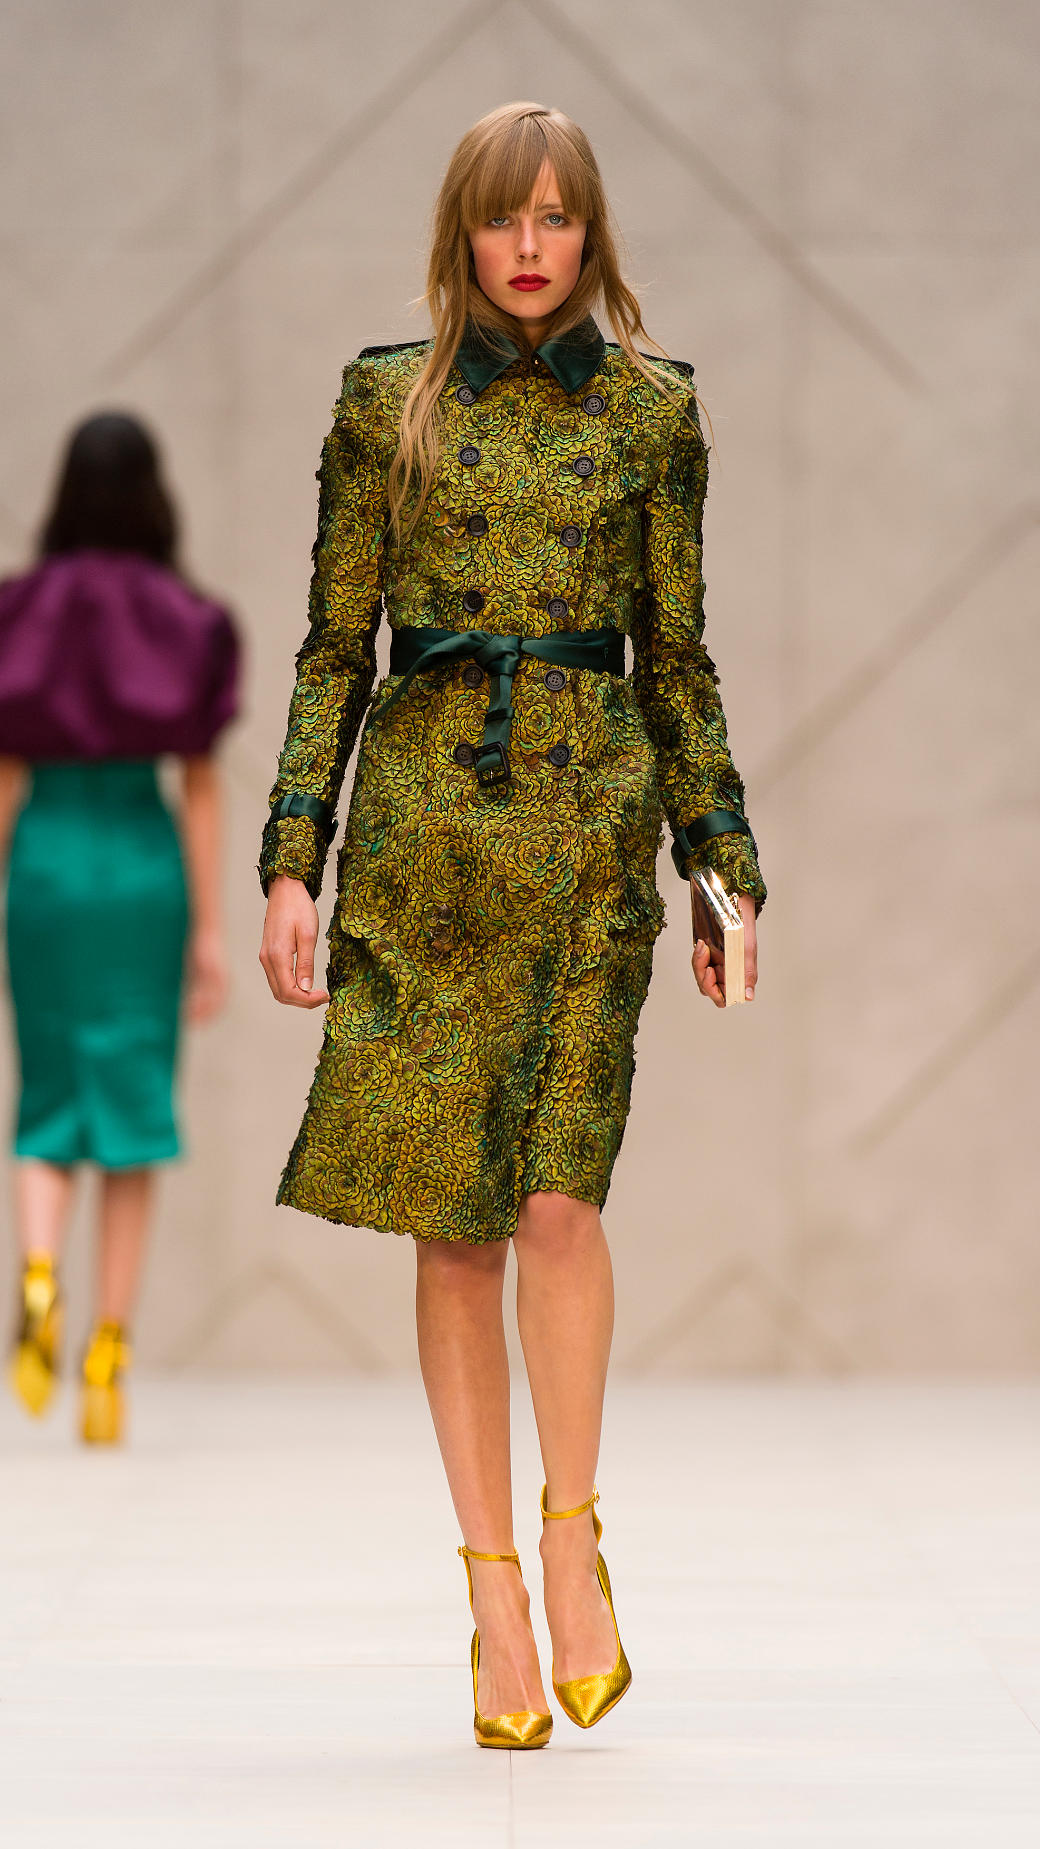 Burberry Prorsum Runway London Fashion Week Aw14: Burberry Prorsum Peacock Feathered Trench Coat In Green